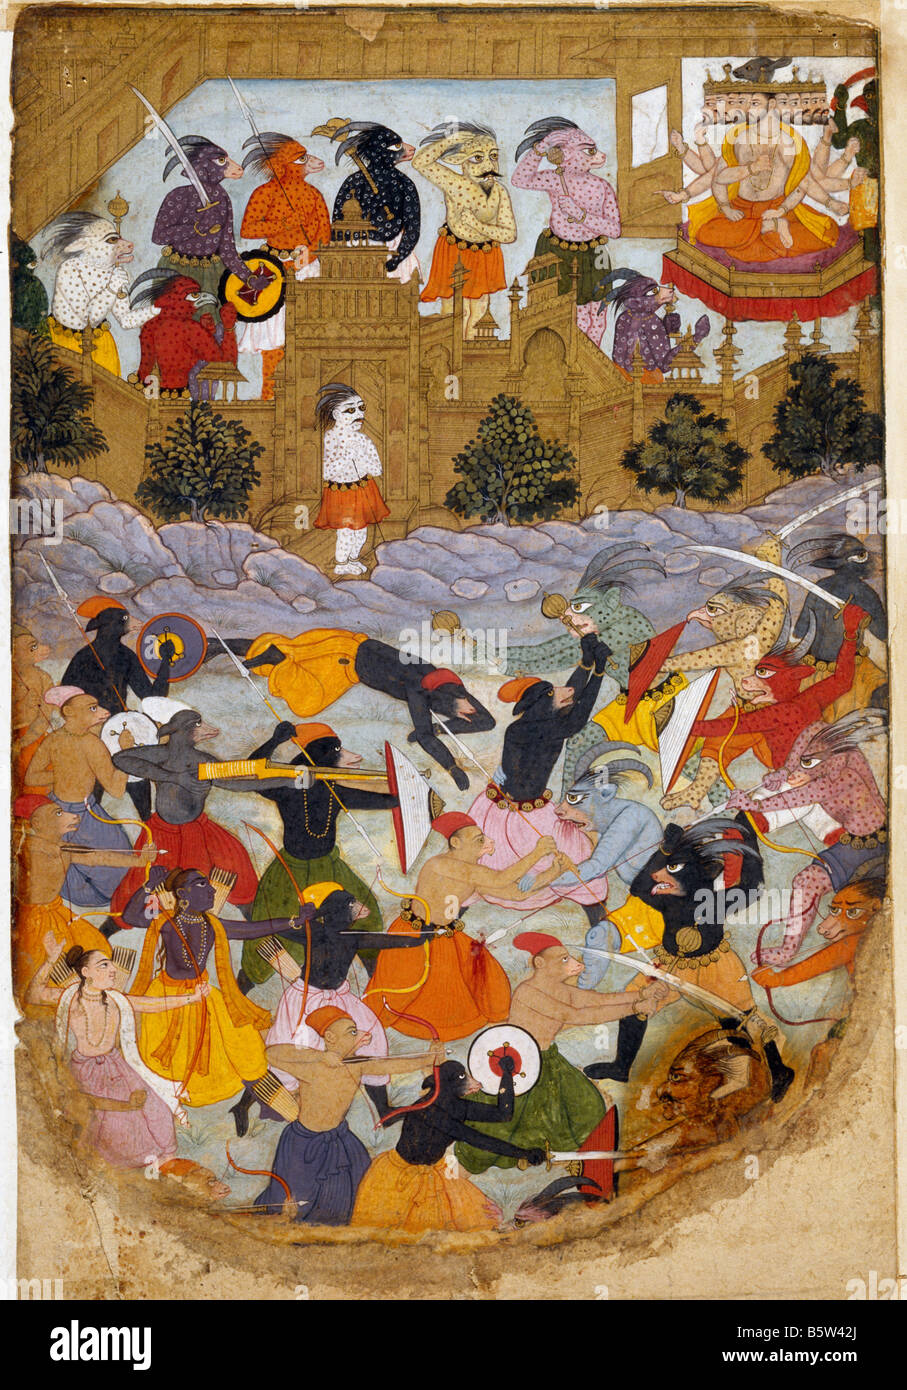 Siege of lanka Islamic book illustration Ramayana. Transcribed with text on reverse. Mughal. C. 1600 AD National - Stock Image